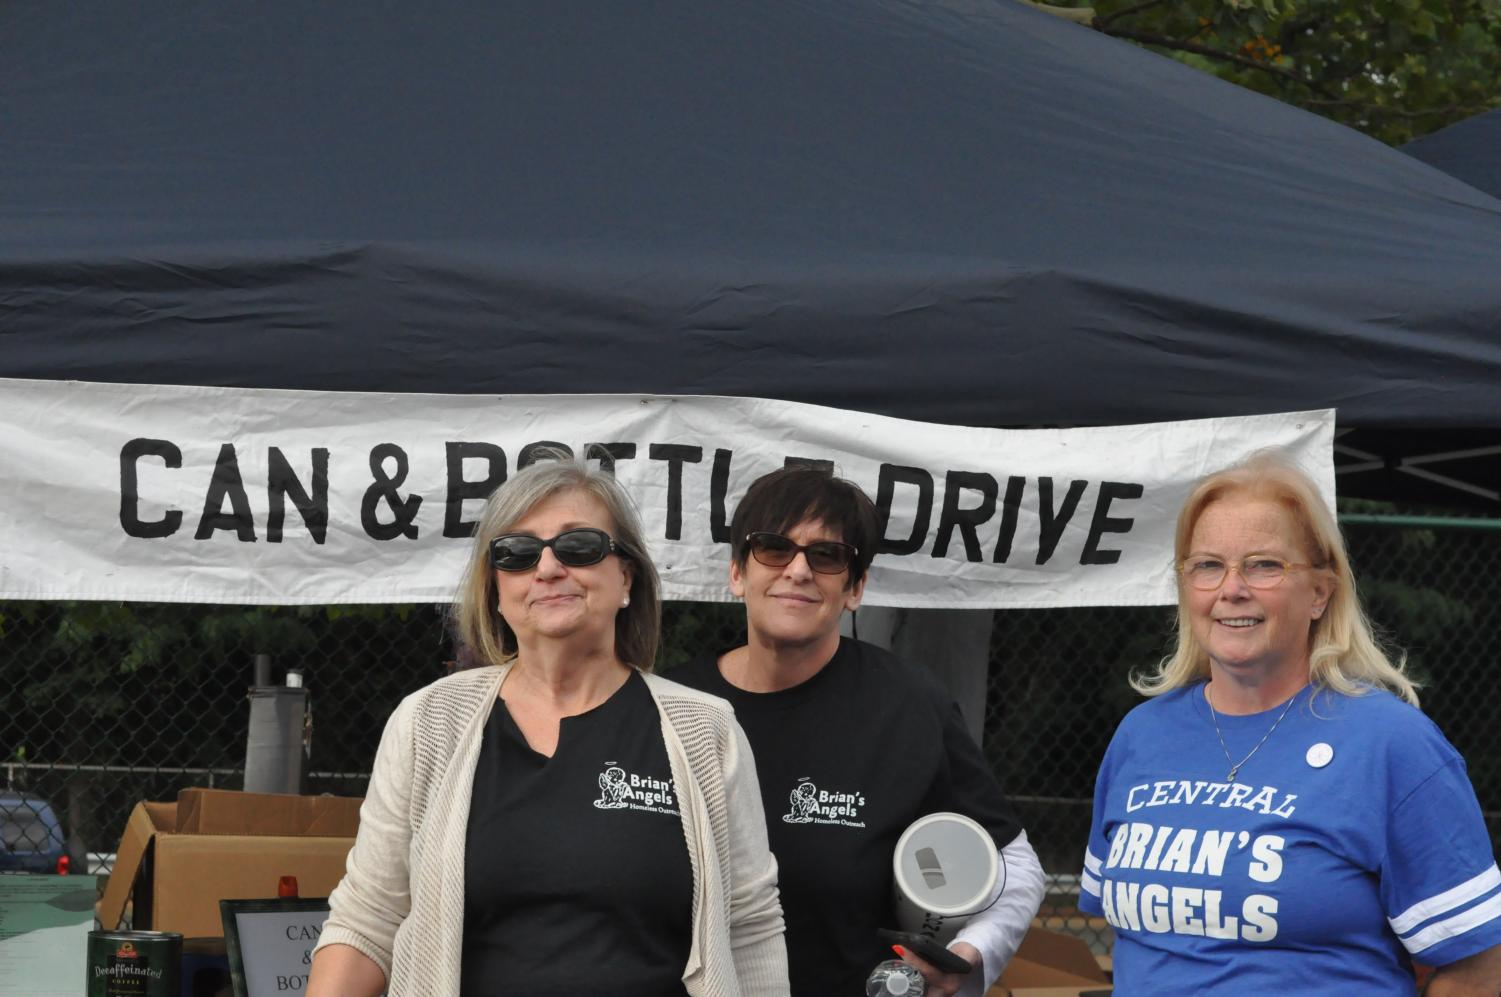 %28Left+to+right%29+Pat+Stebbins%2C+Kim+Margelot+and+Kathy+Nelson+help+run+a+can+and+bottle+drive+for+Brian%27s+Angels+Homeless+Outreach.